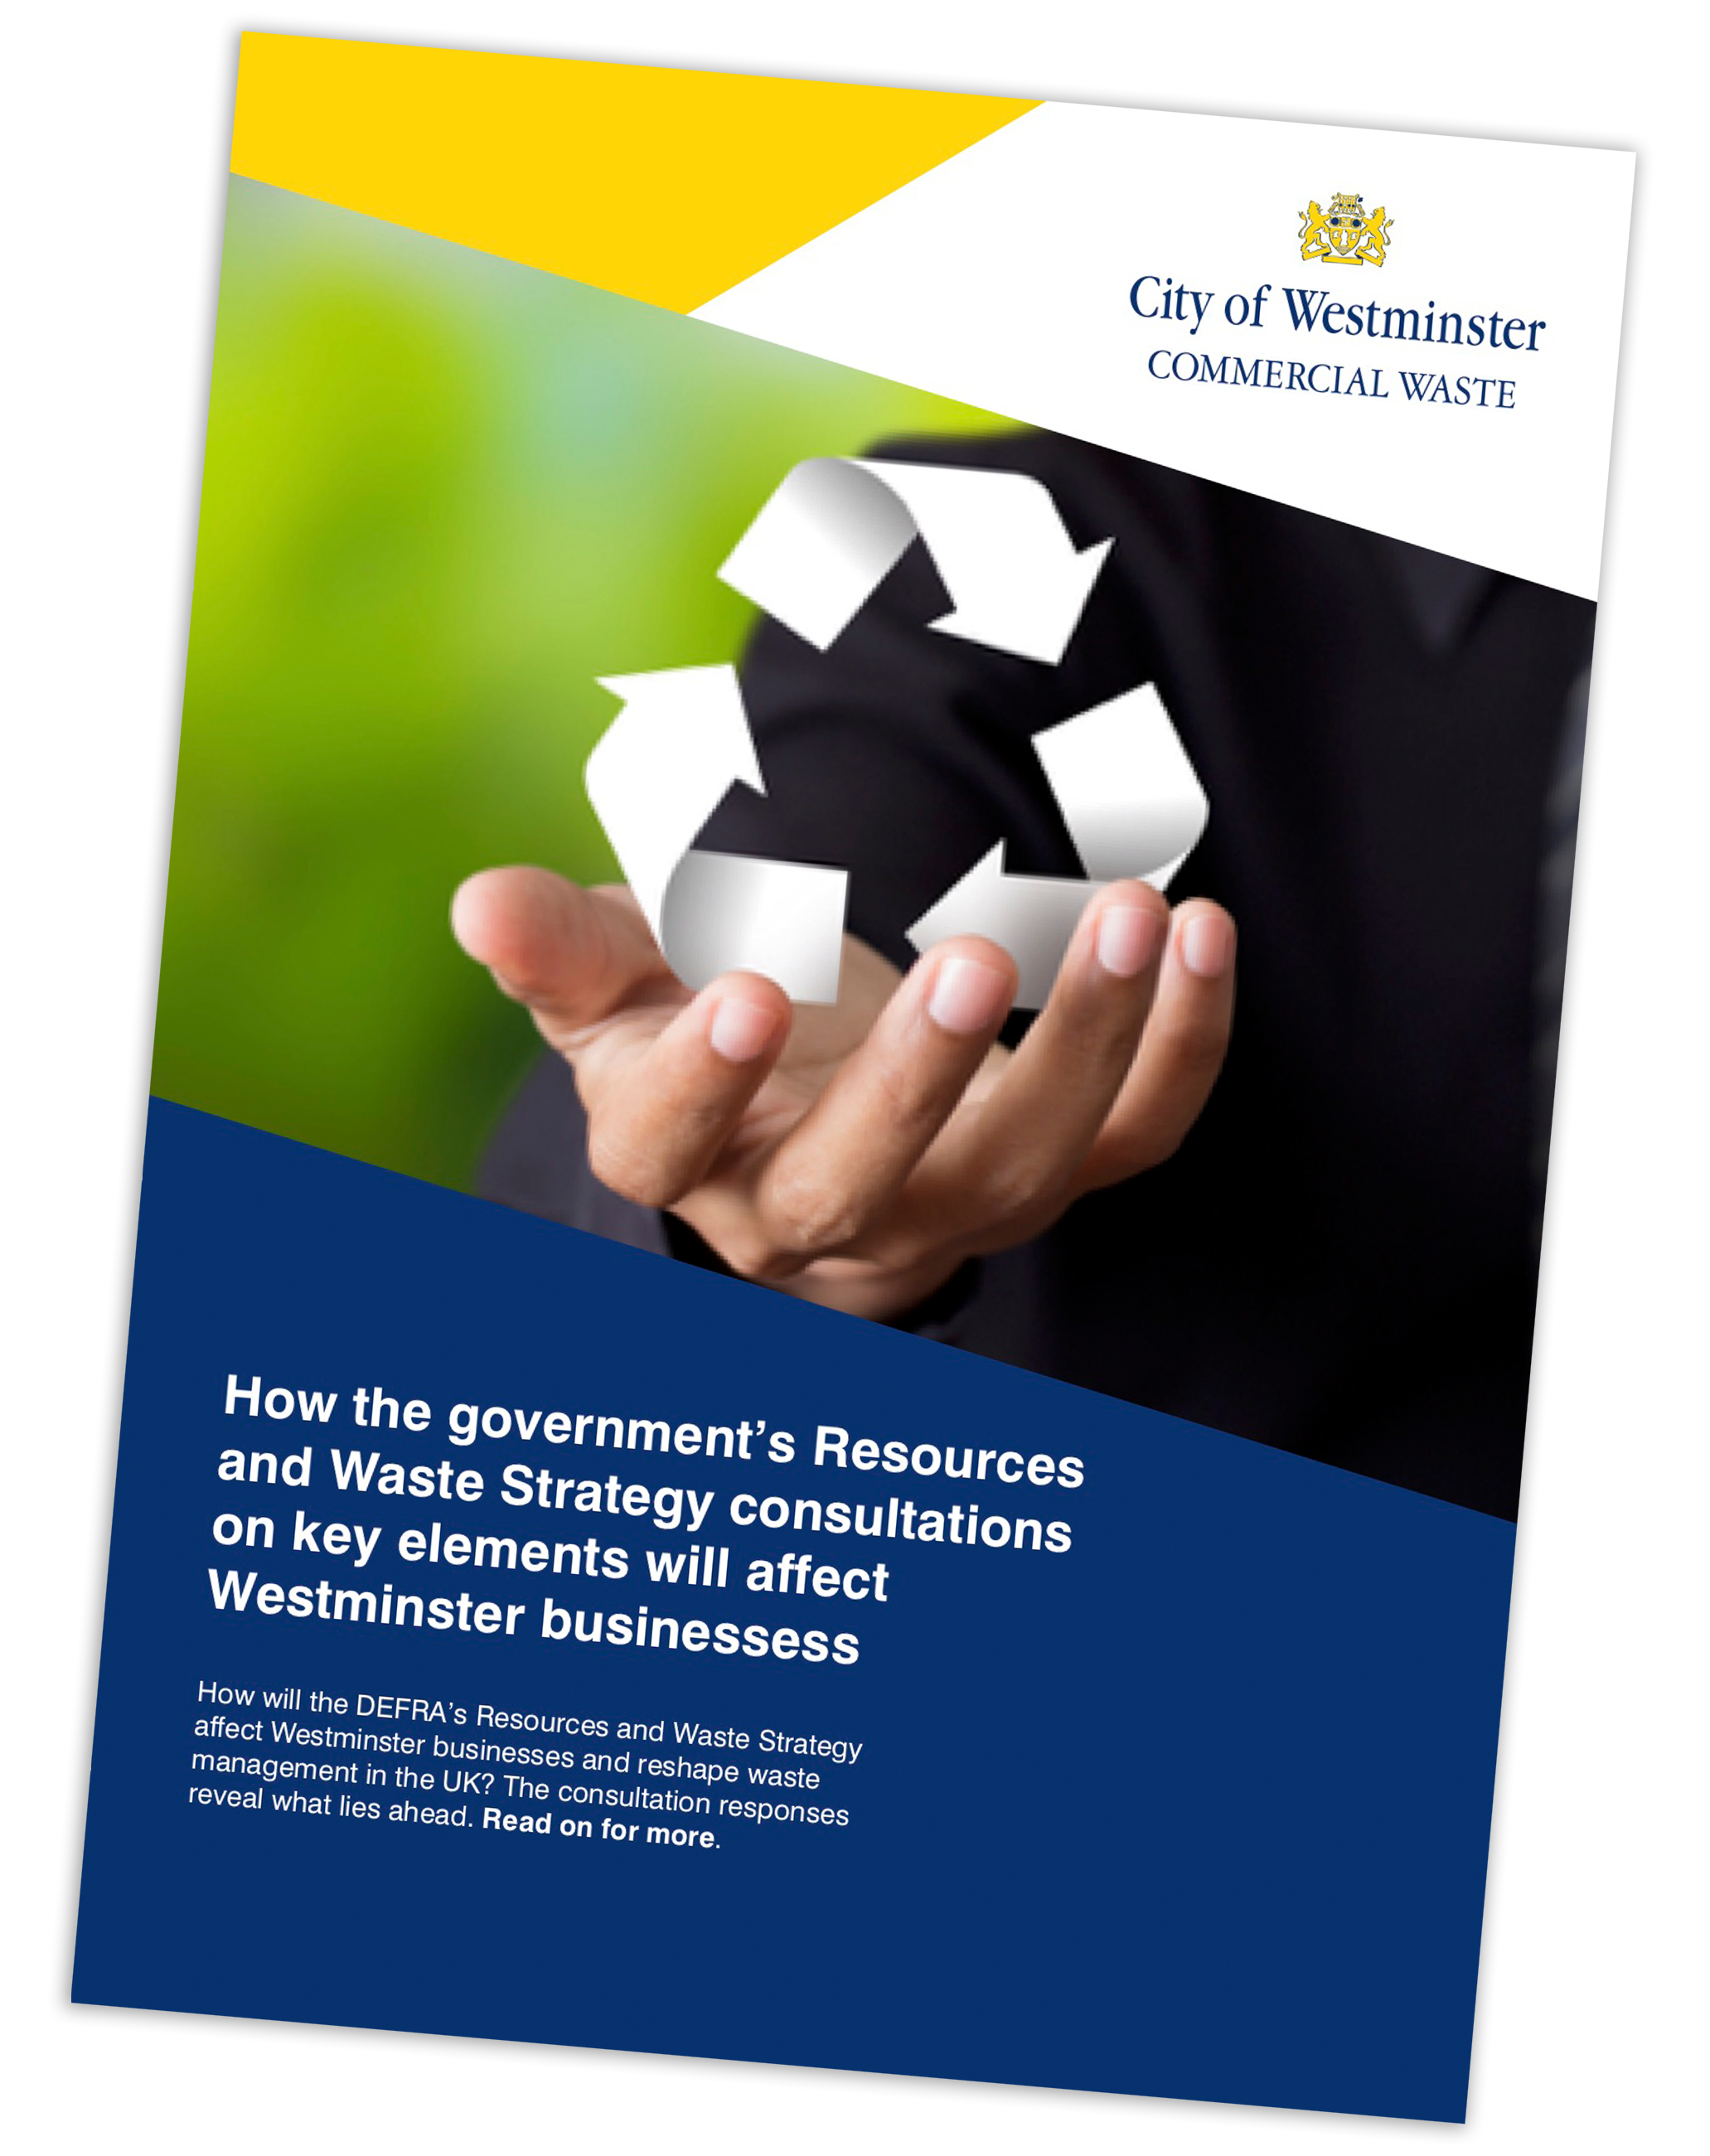 Governments Resources and Waste Strategy